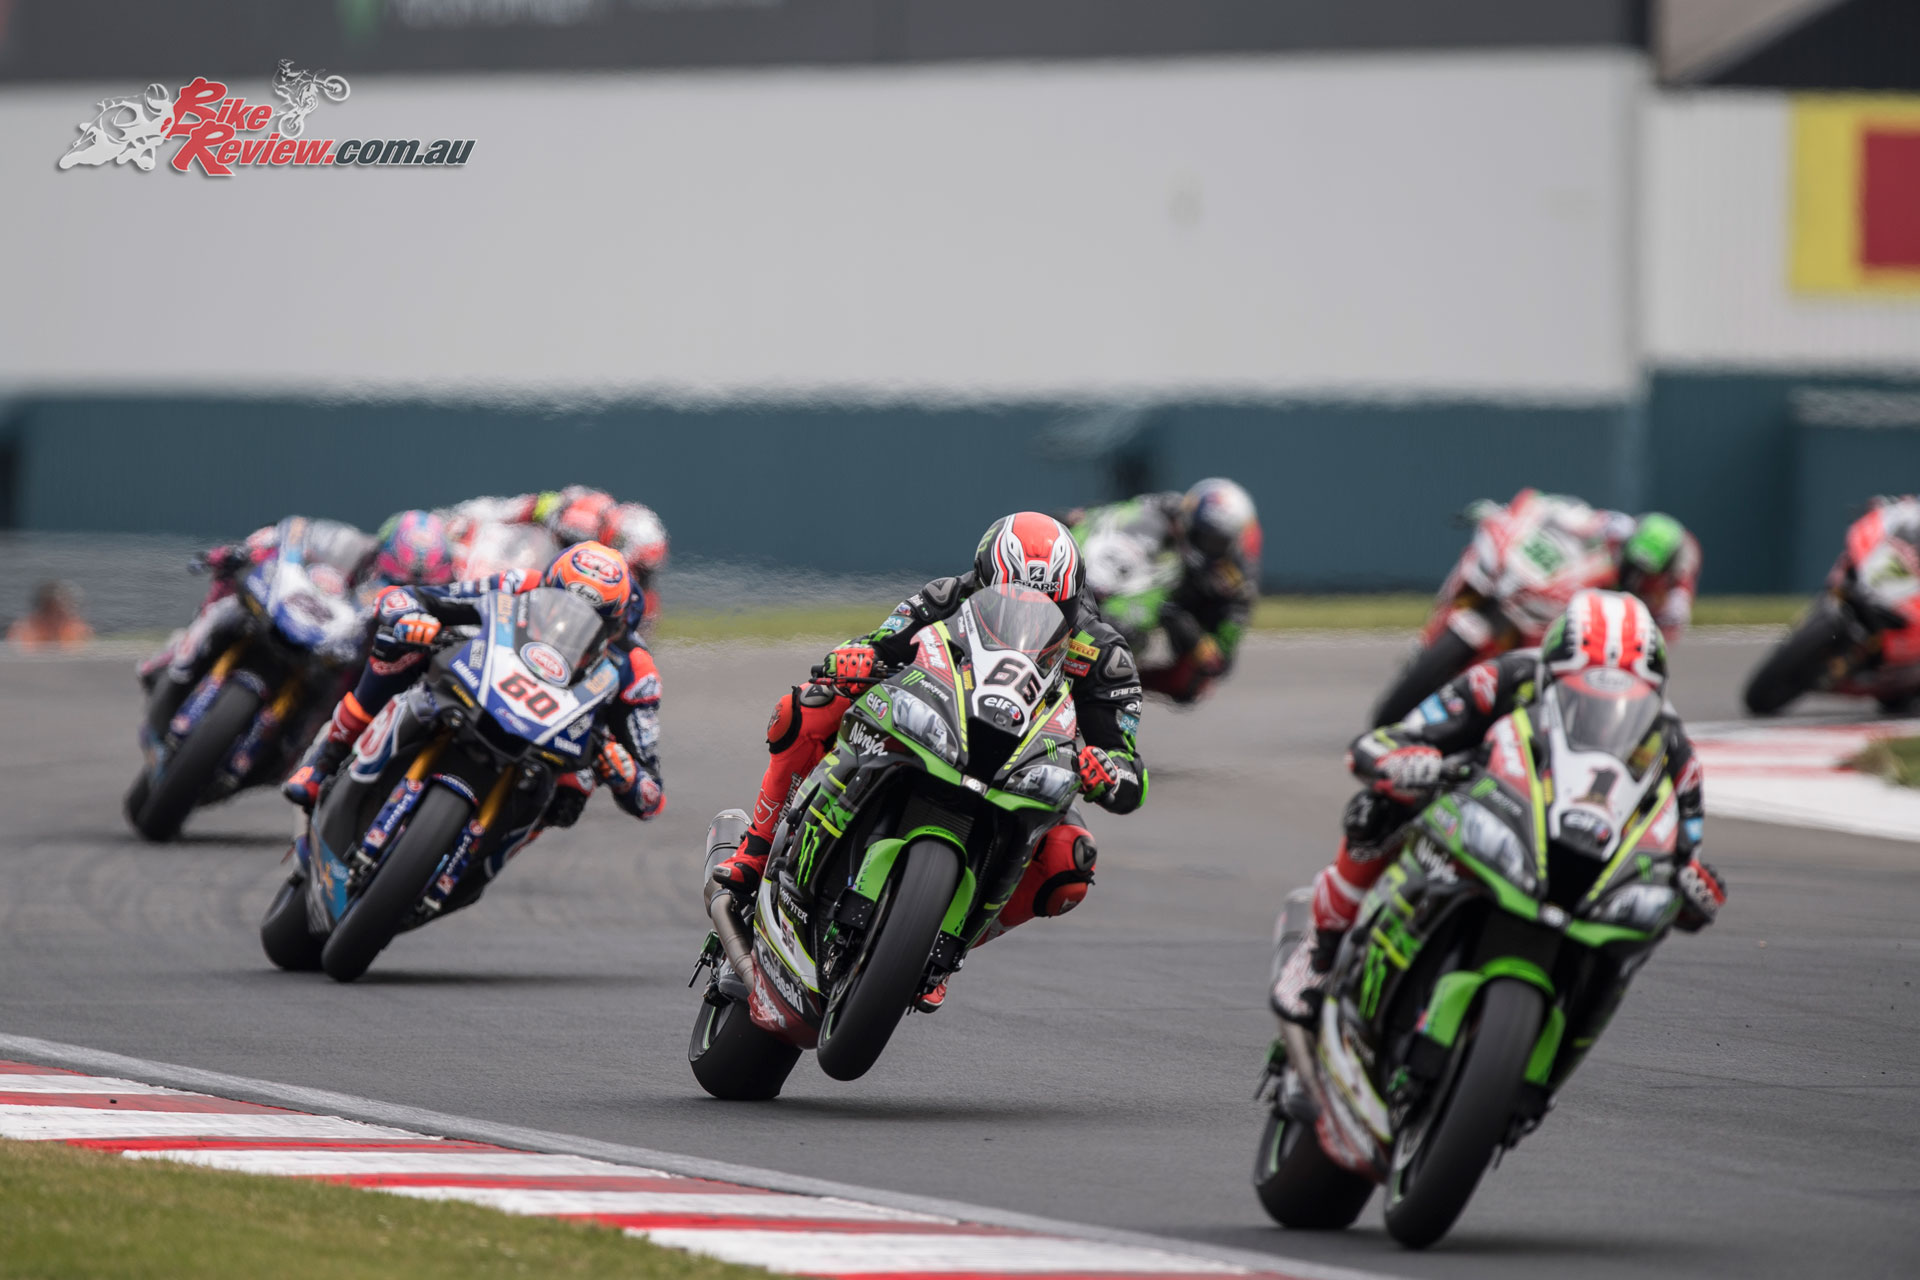 Sykes in the lead